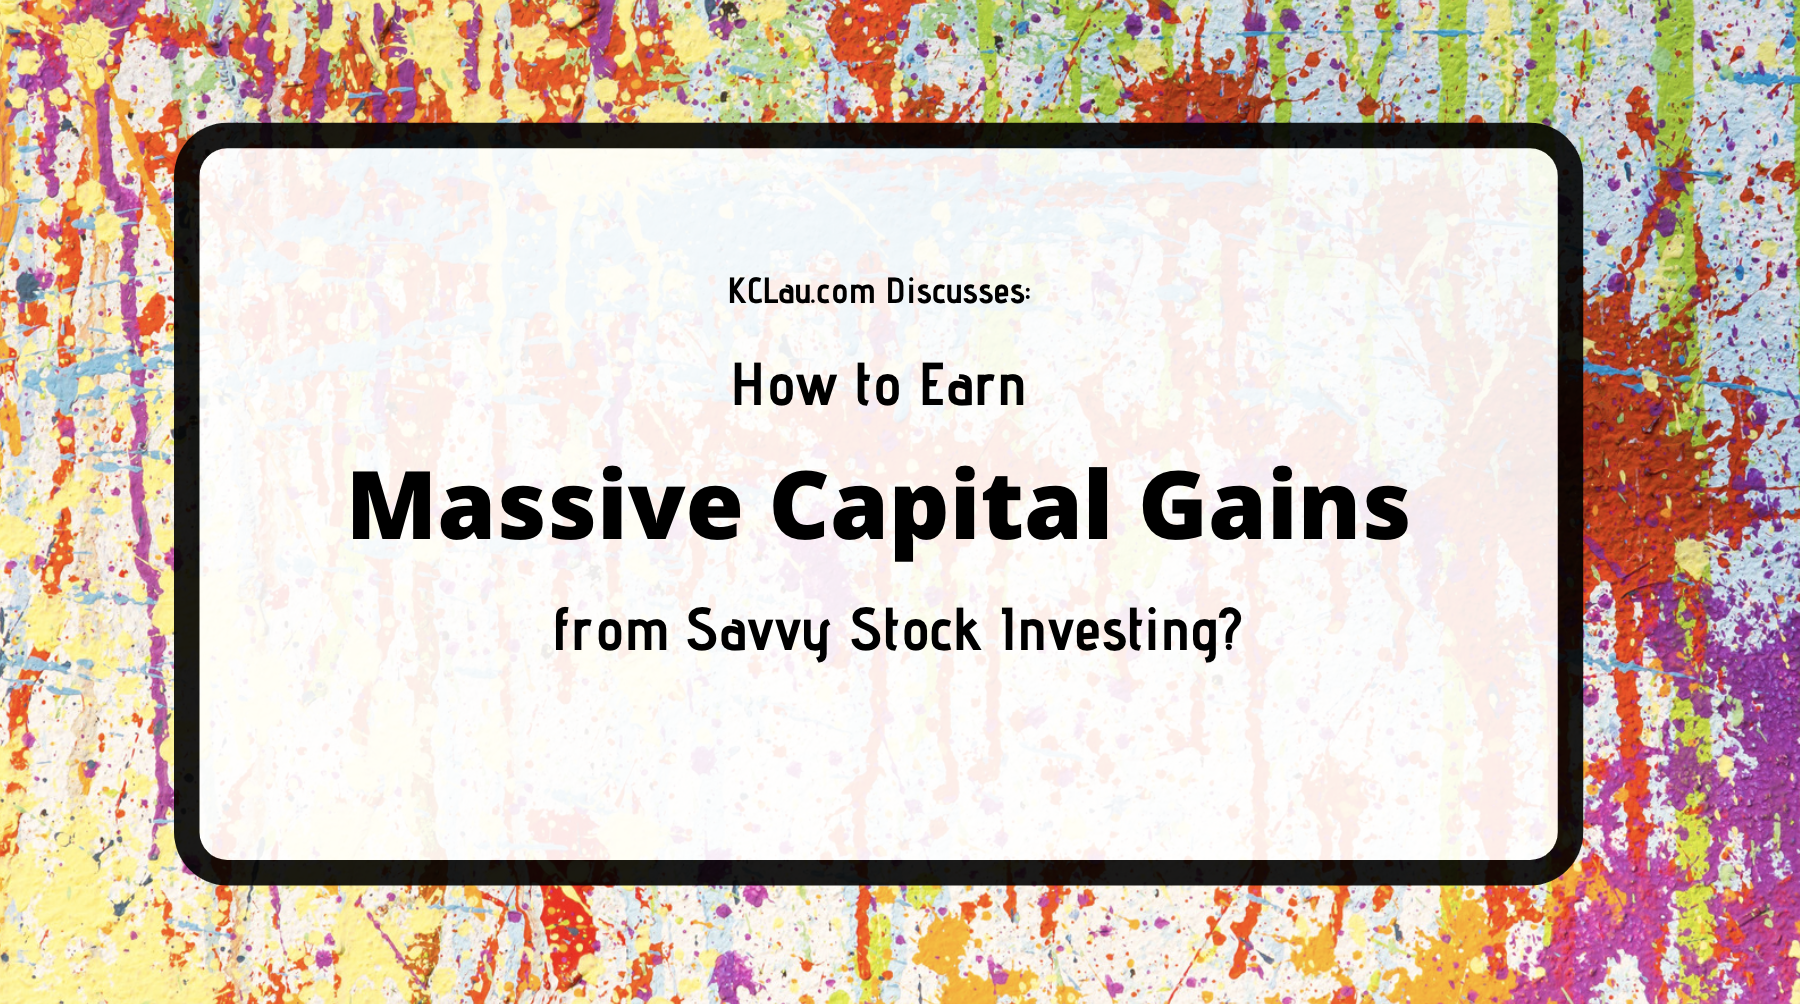 How to Earn Massive Capital Gains from Savvy Stock Investing?